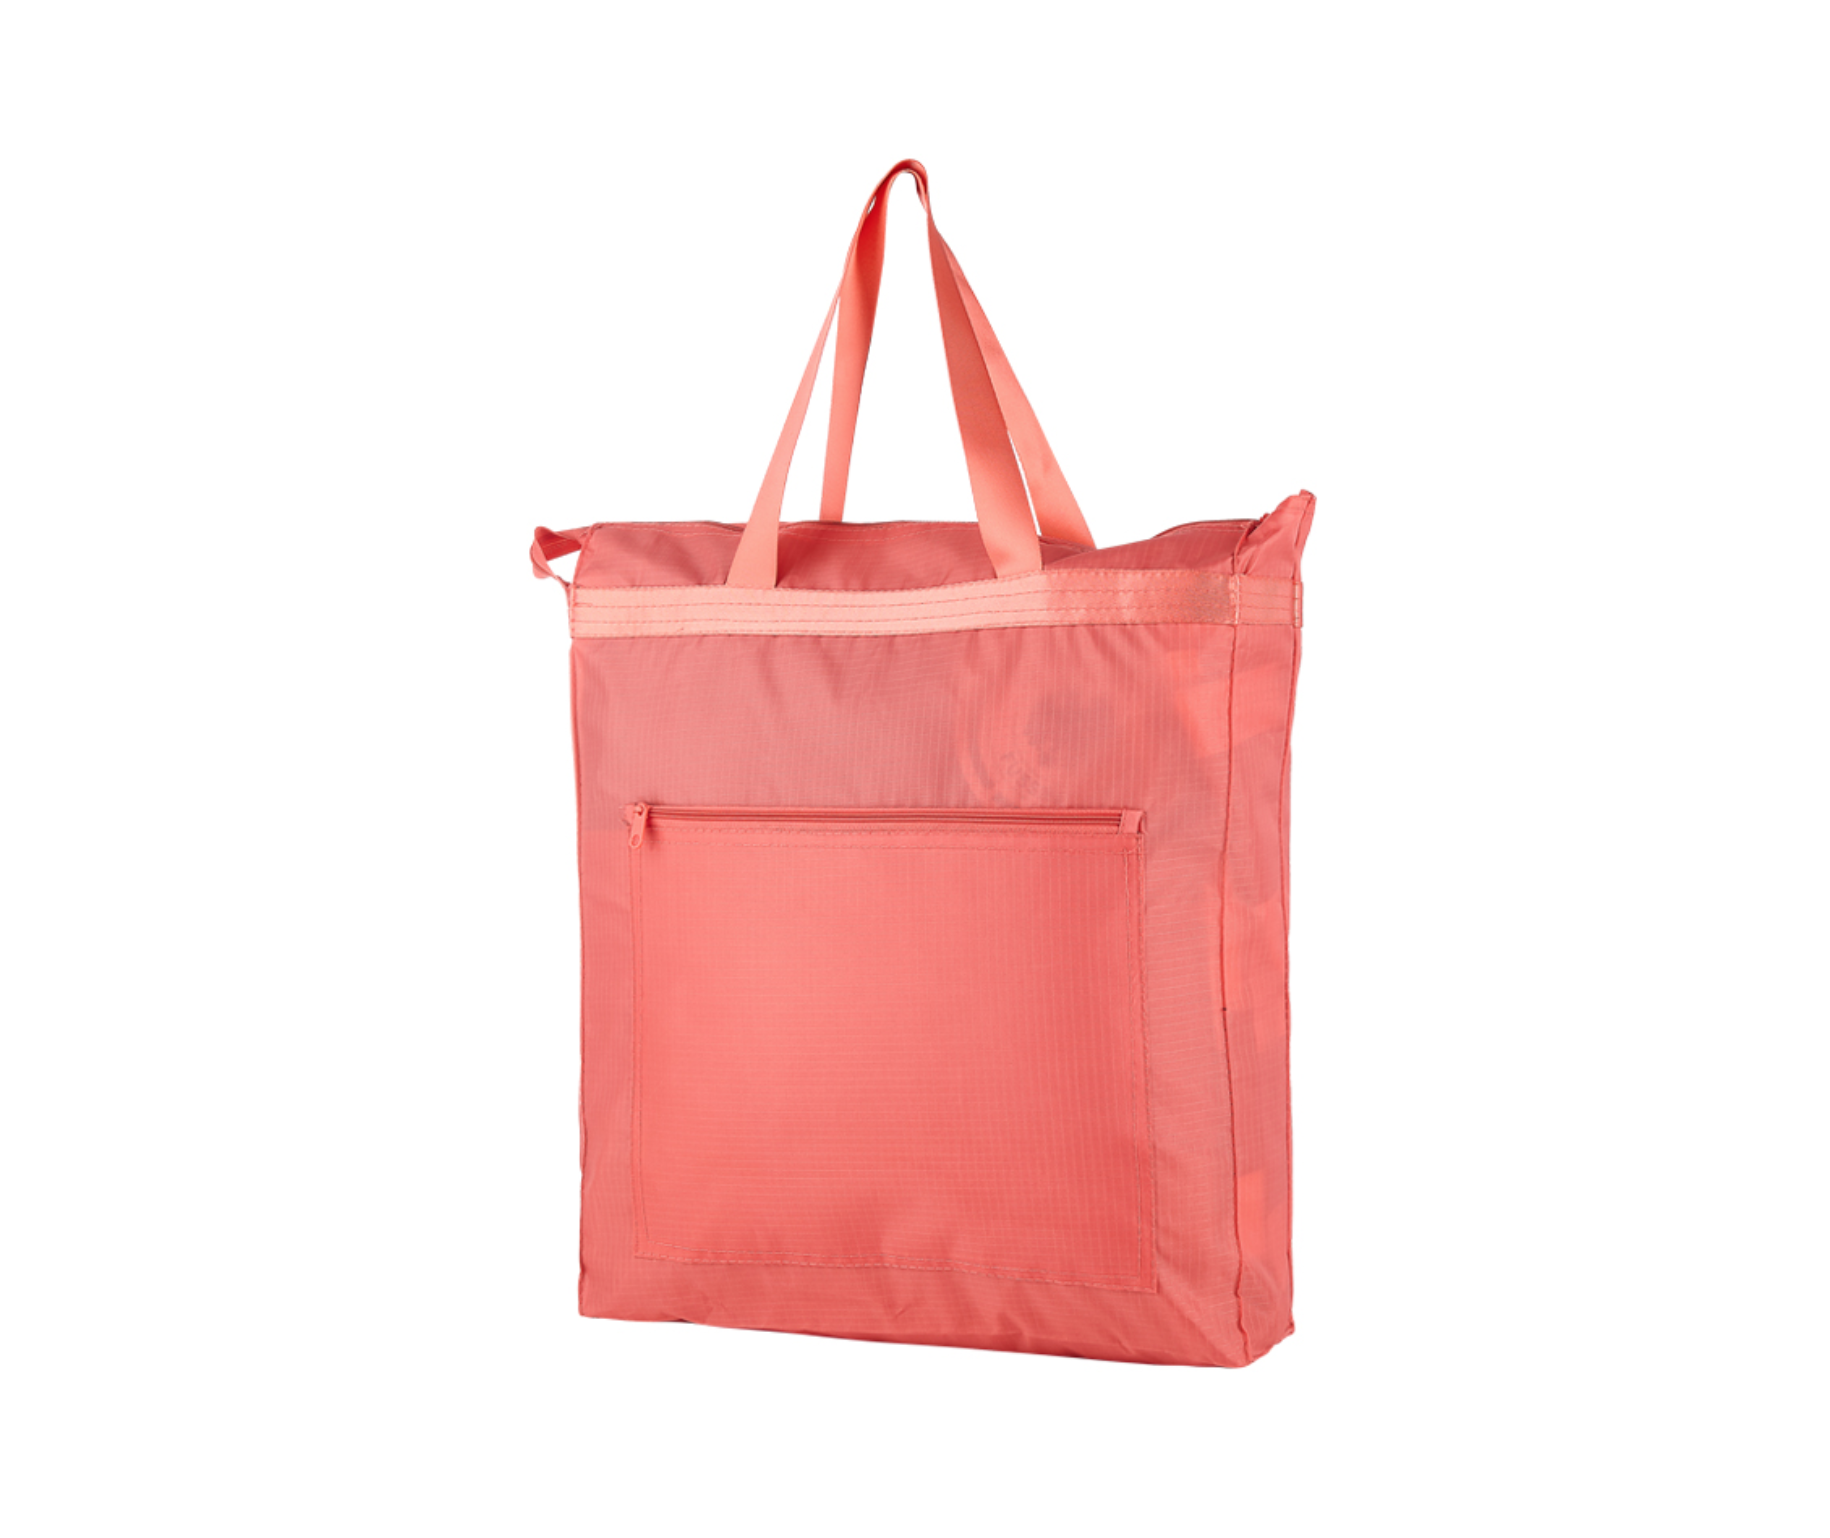 Foldable Eco Bag